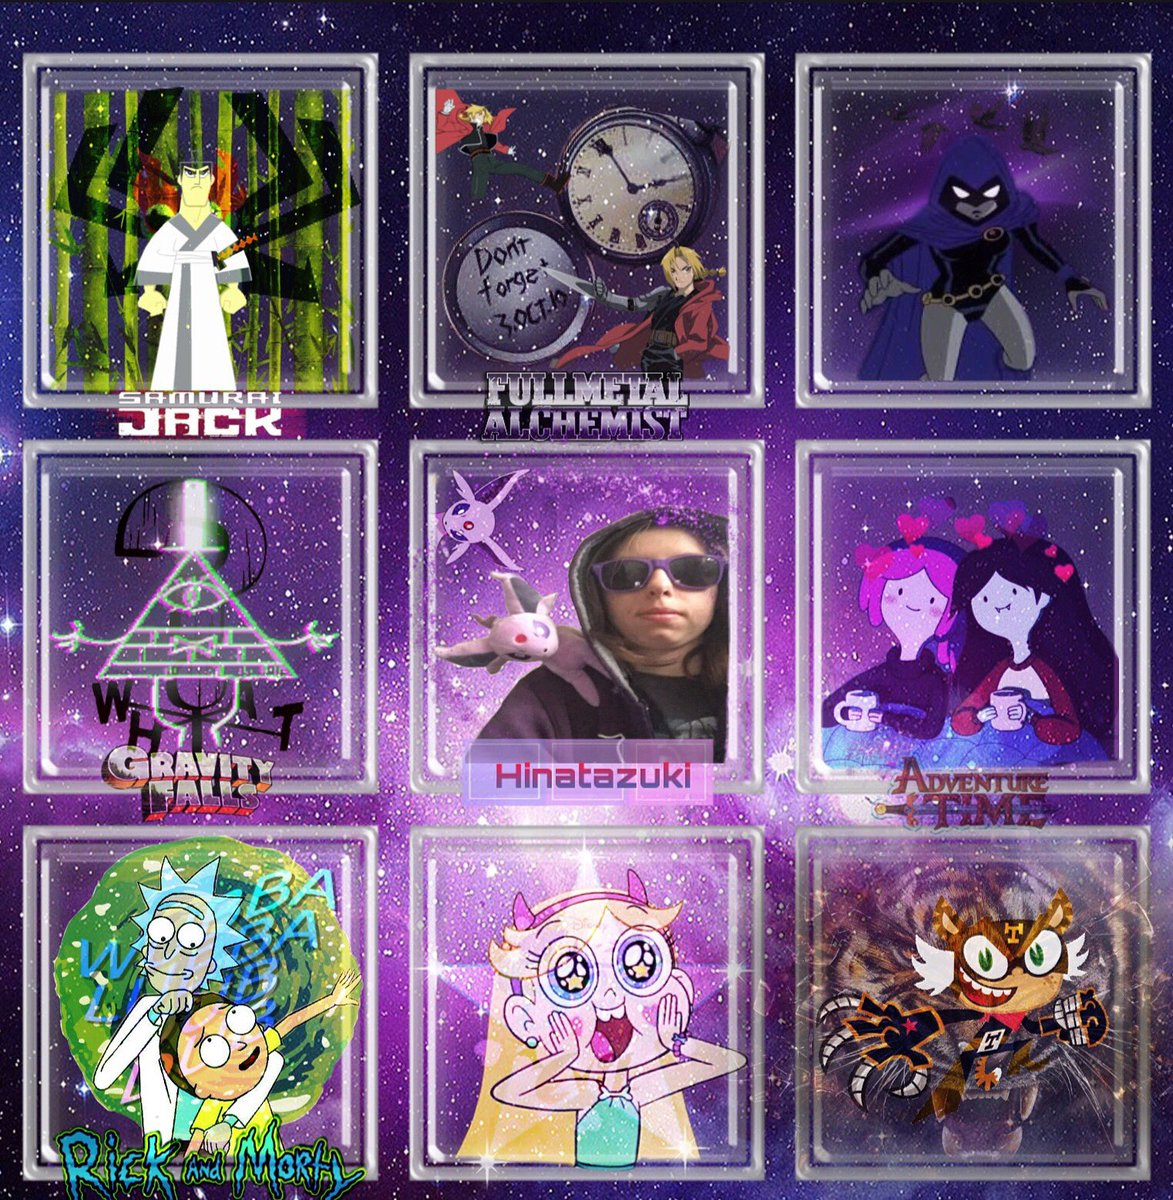 I want to make a challenge for the #ArtistOnTwitter to make a moodboard of either shows or inspirations up to 2020 to see how far we've come in these 2 decades. #adventuretime #FullmetalAlchemist #StarVsTheForcesOfEvil